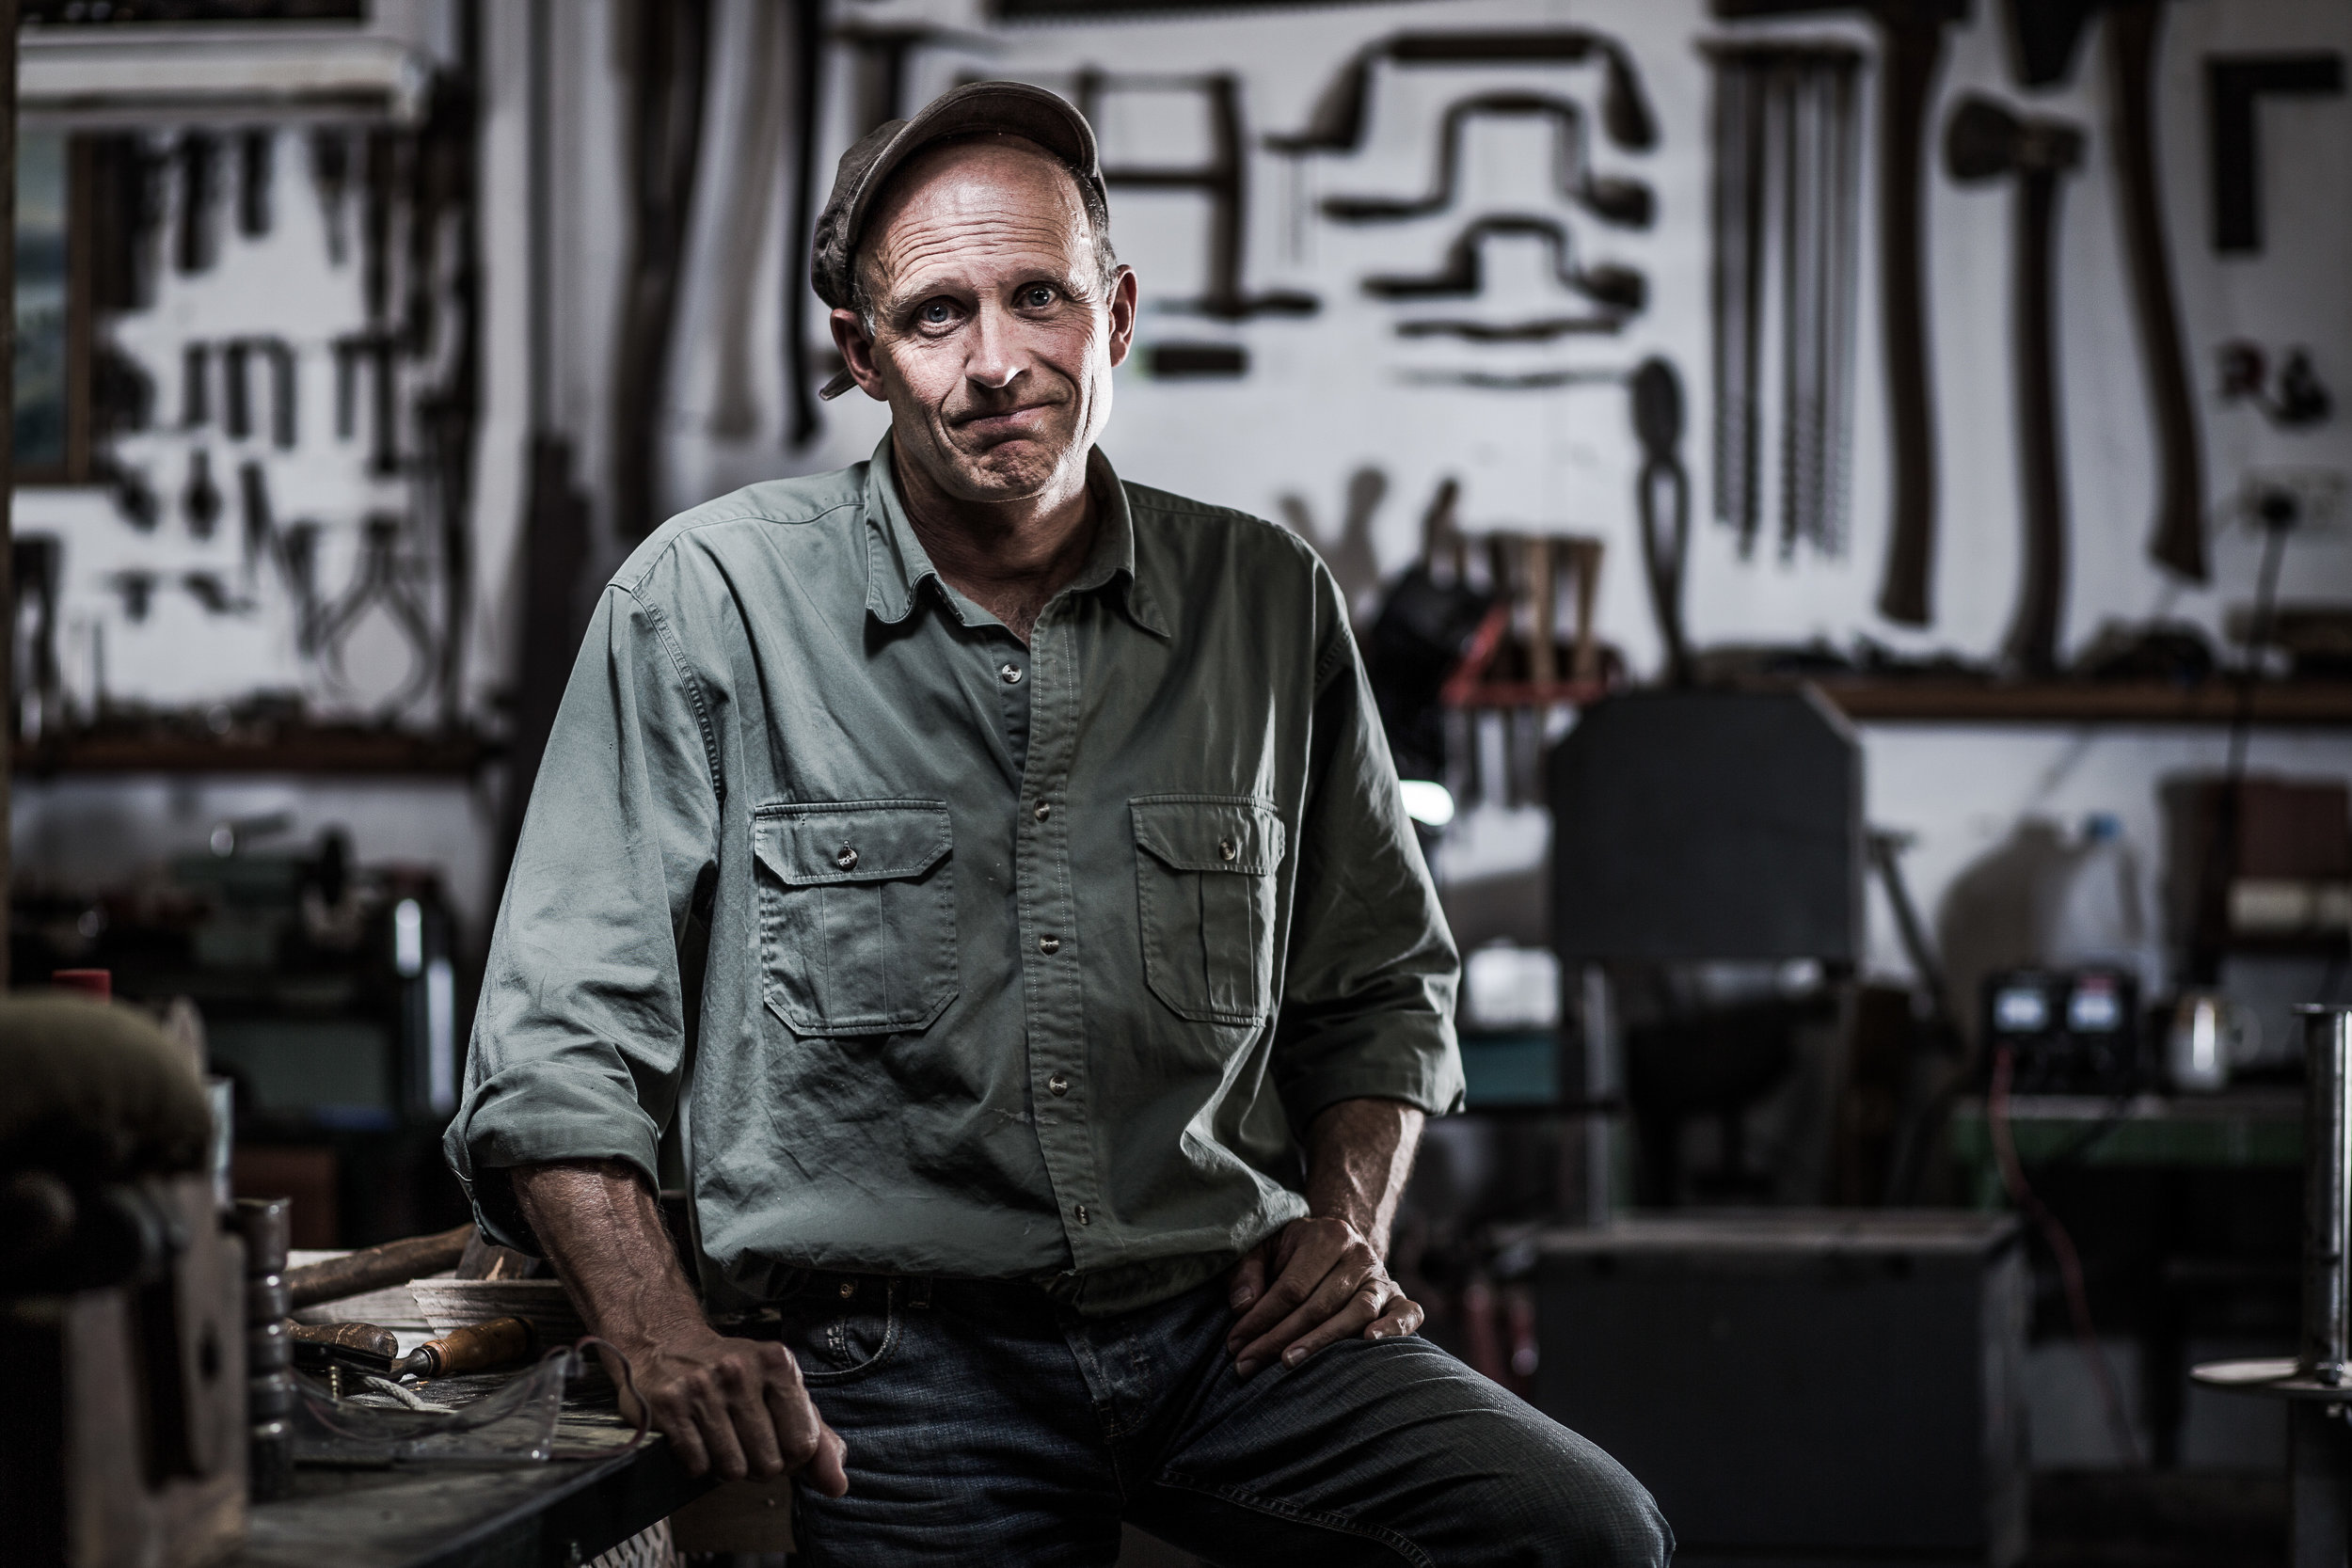 Workshop portrait of a man wearing jeans and a shirt looking frustrated